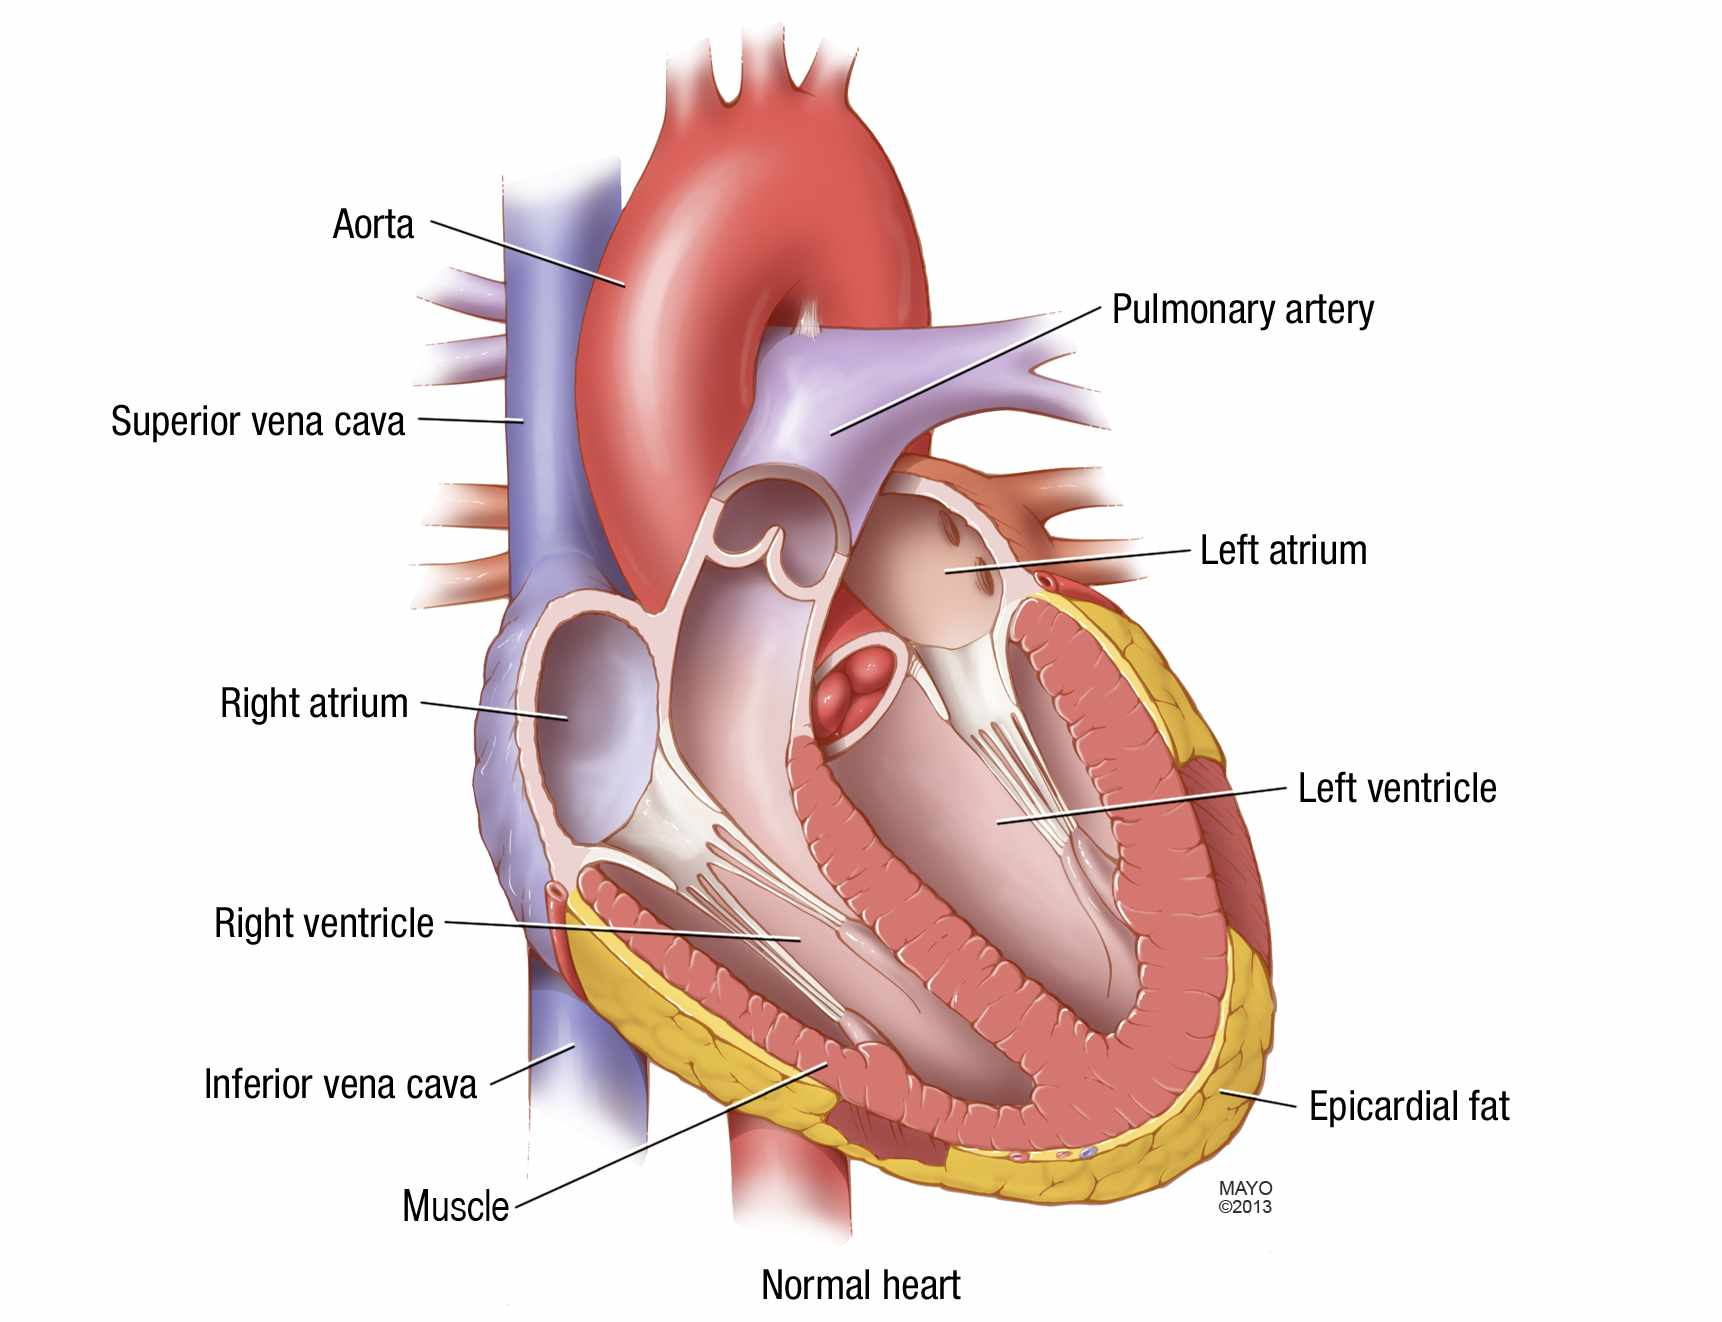 illustration of normal heart